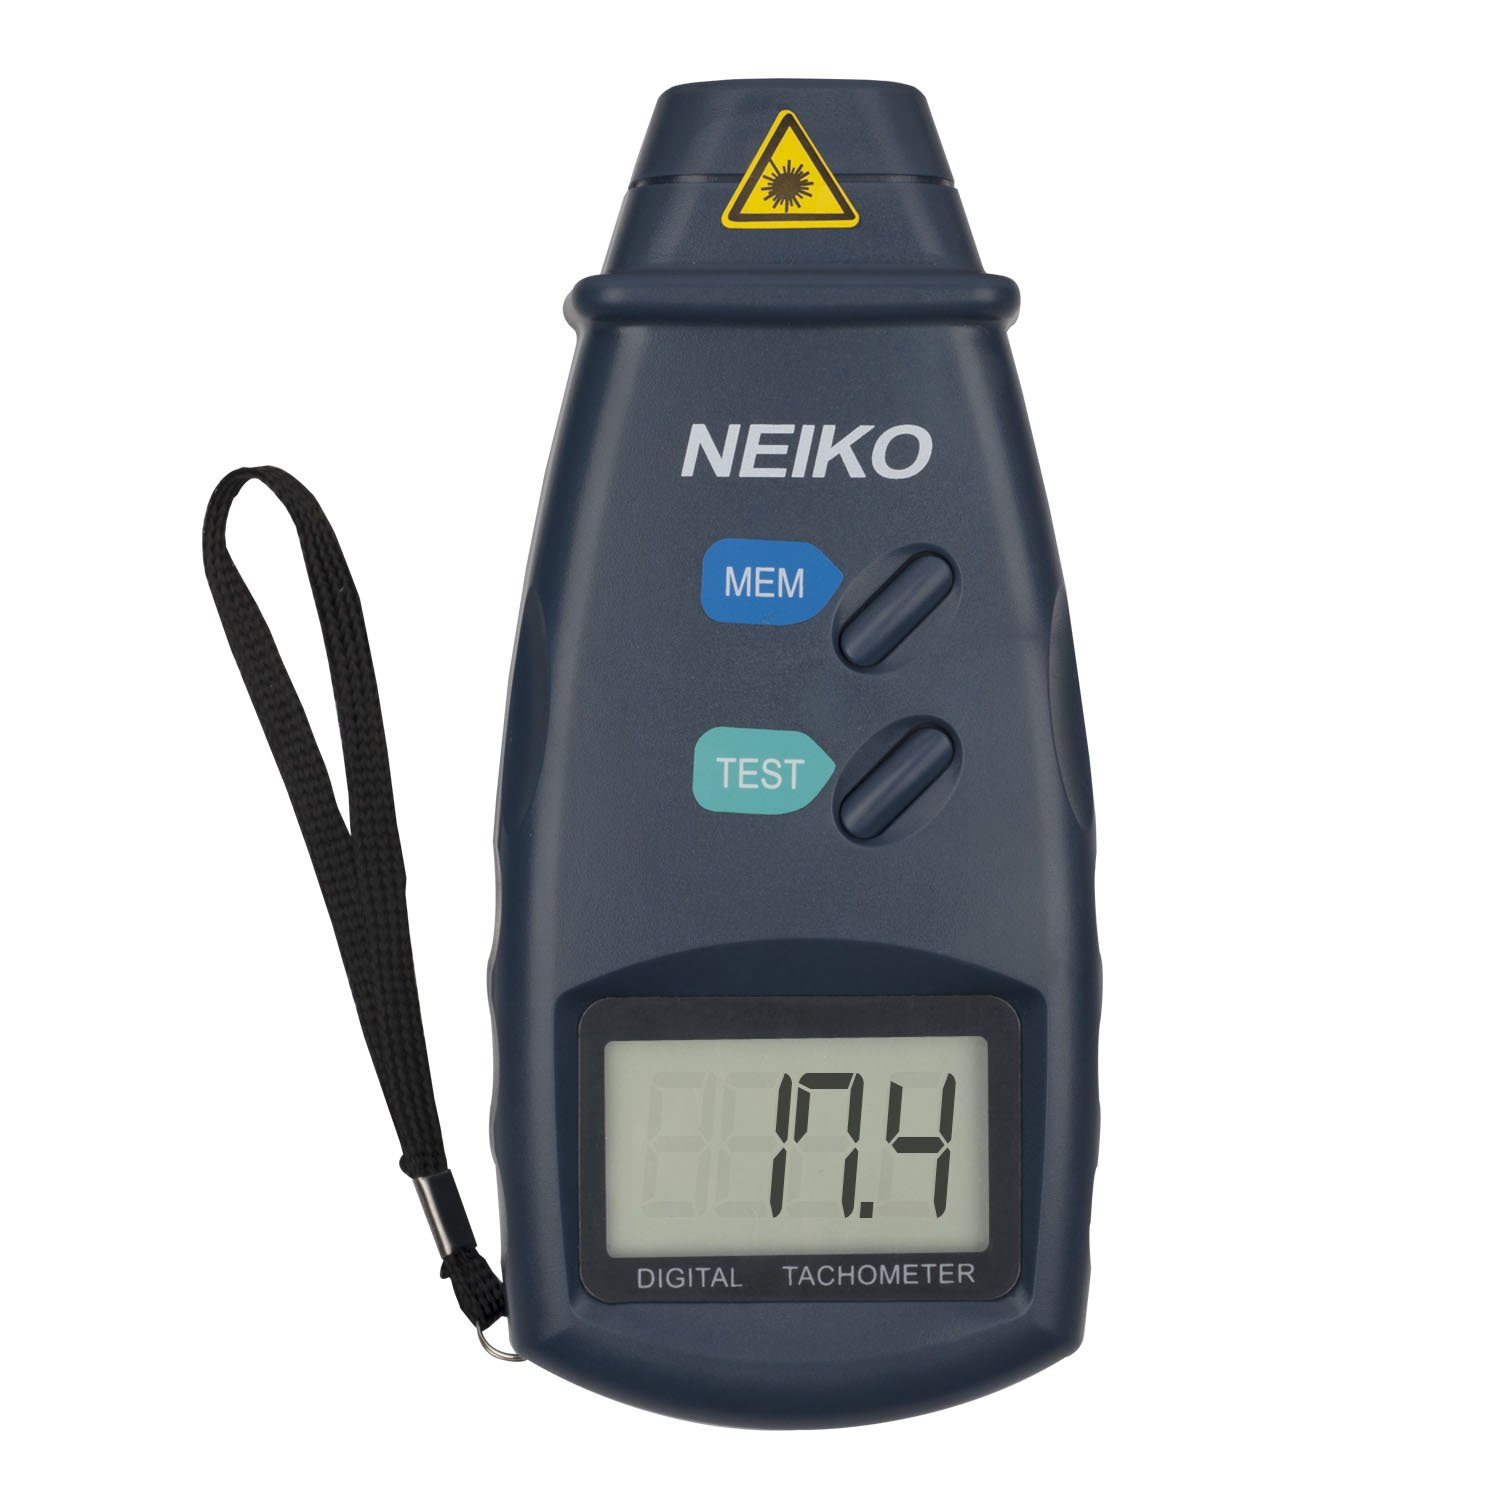 Neiko 20713A Digital Tachometer, Non Contact Laser Photo | 2.5 - 99,999 RPM Accuracy | Batteries Included